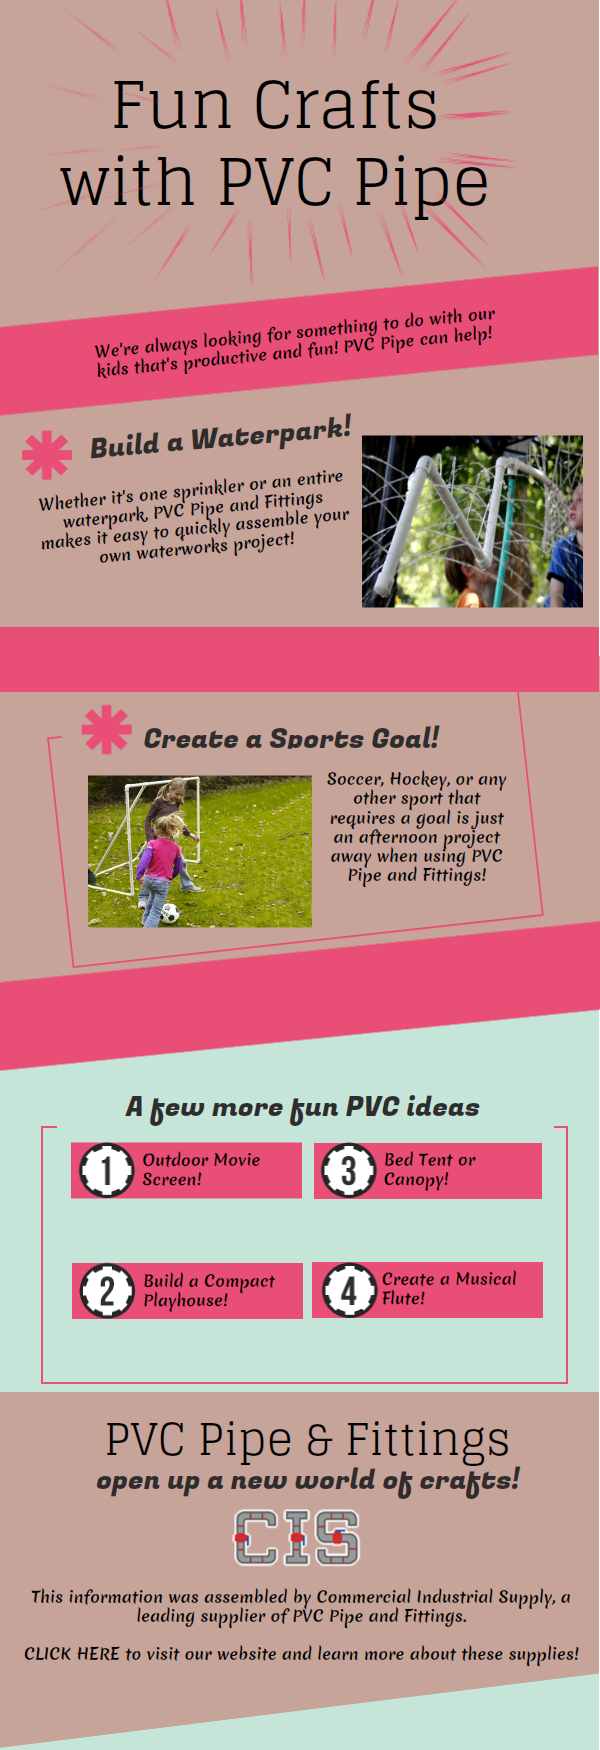 pvc crafts Fun Crafts For The Kids With PVC Pipe